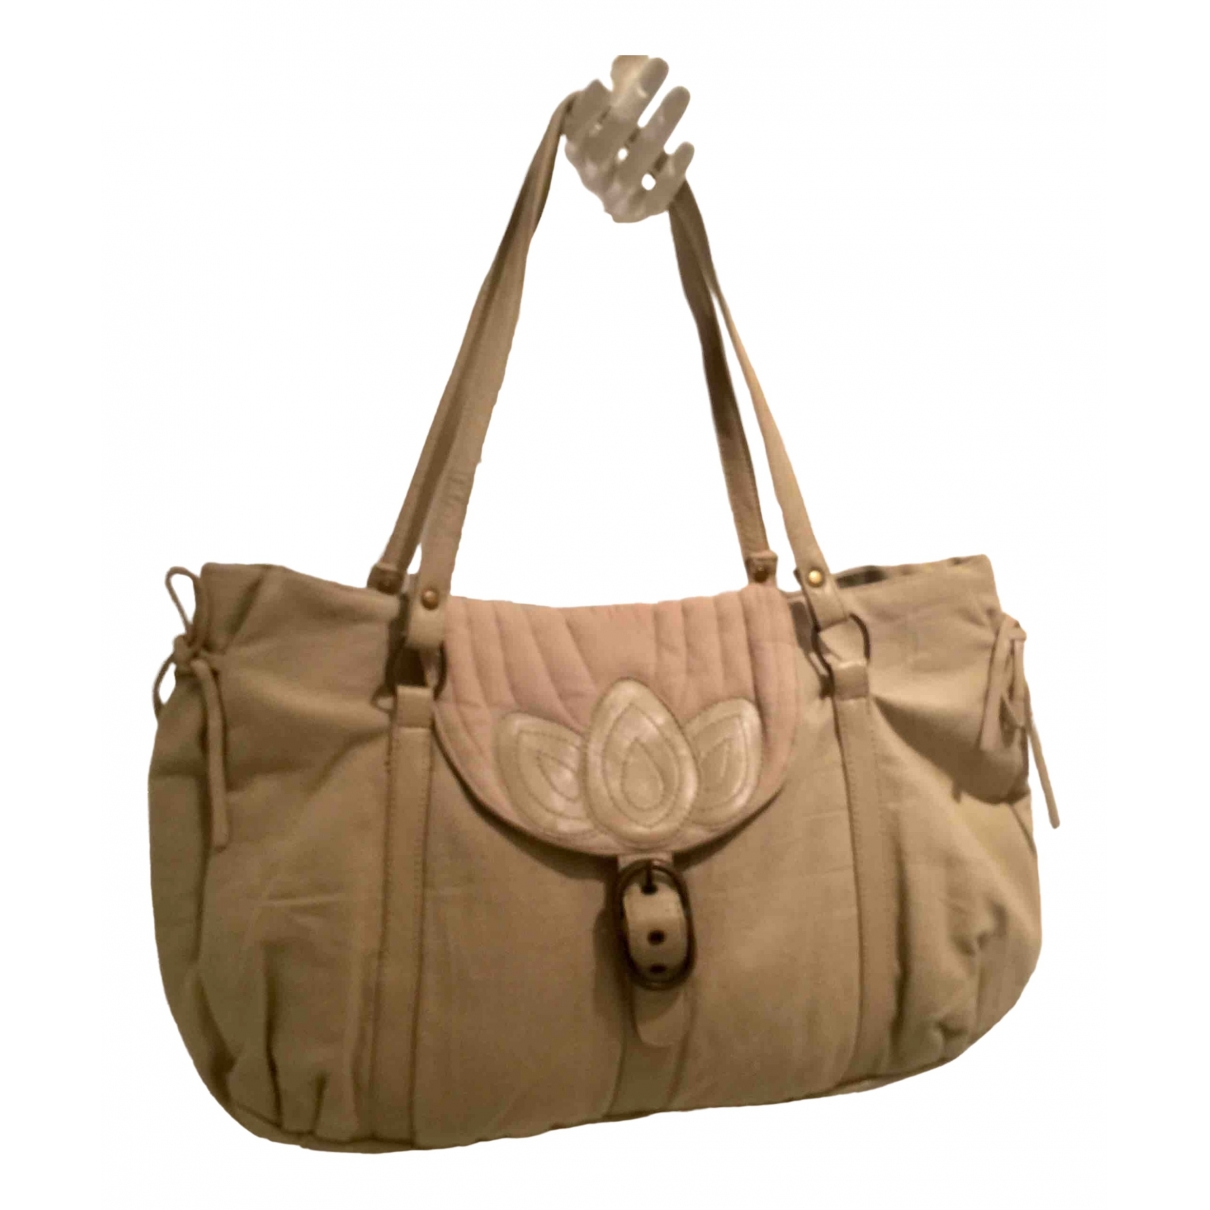 Polder \N Khaki Cotton handbag for Women \N